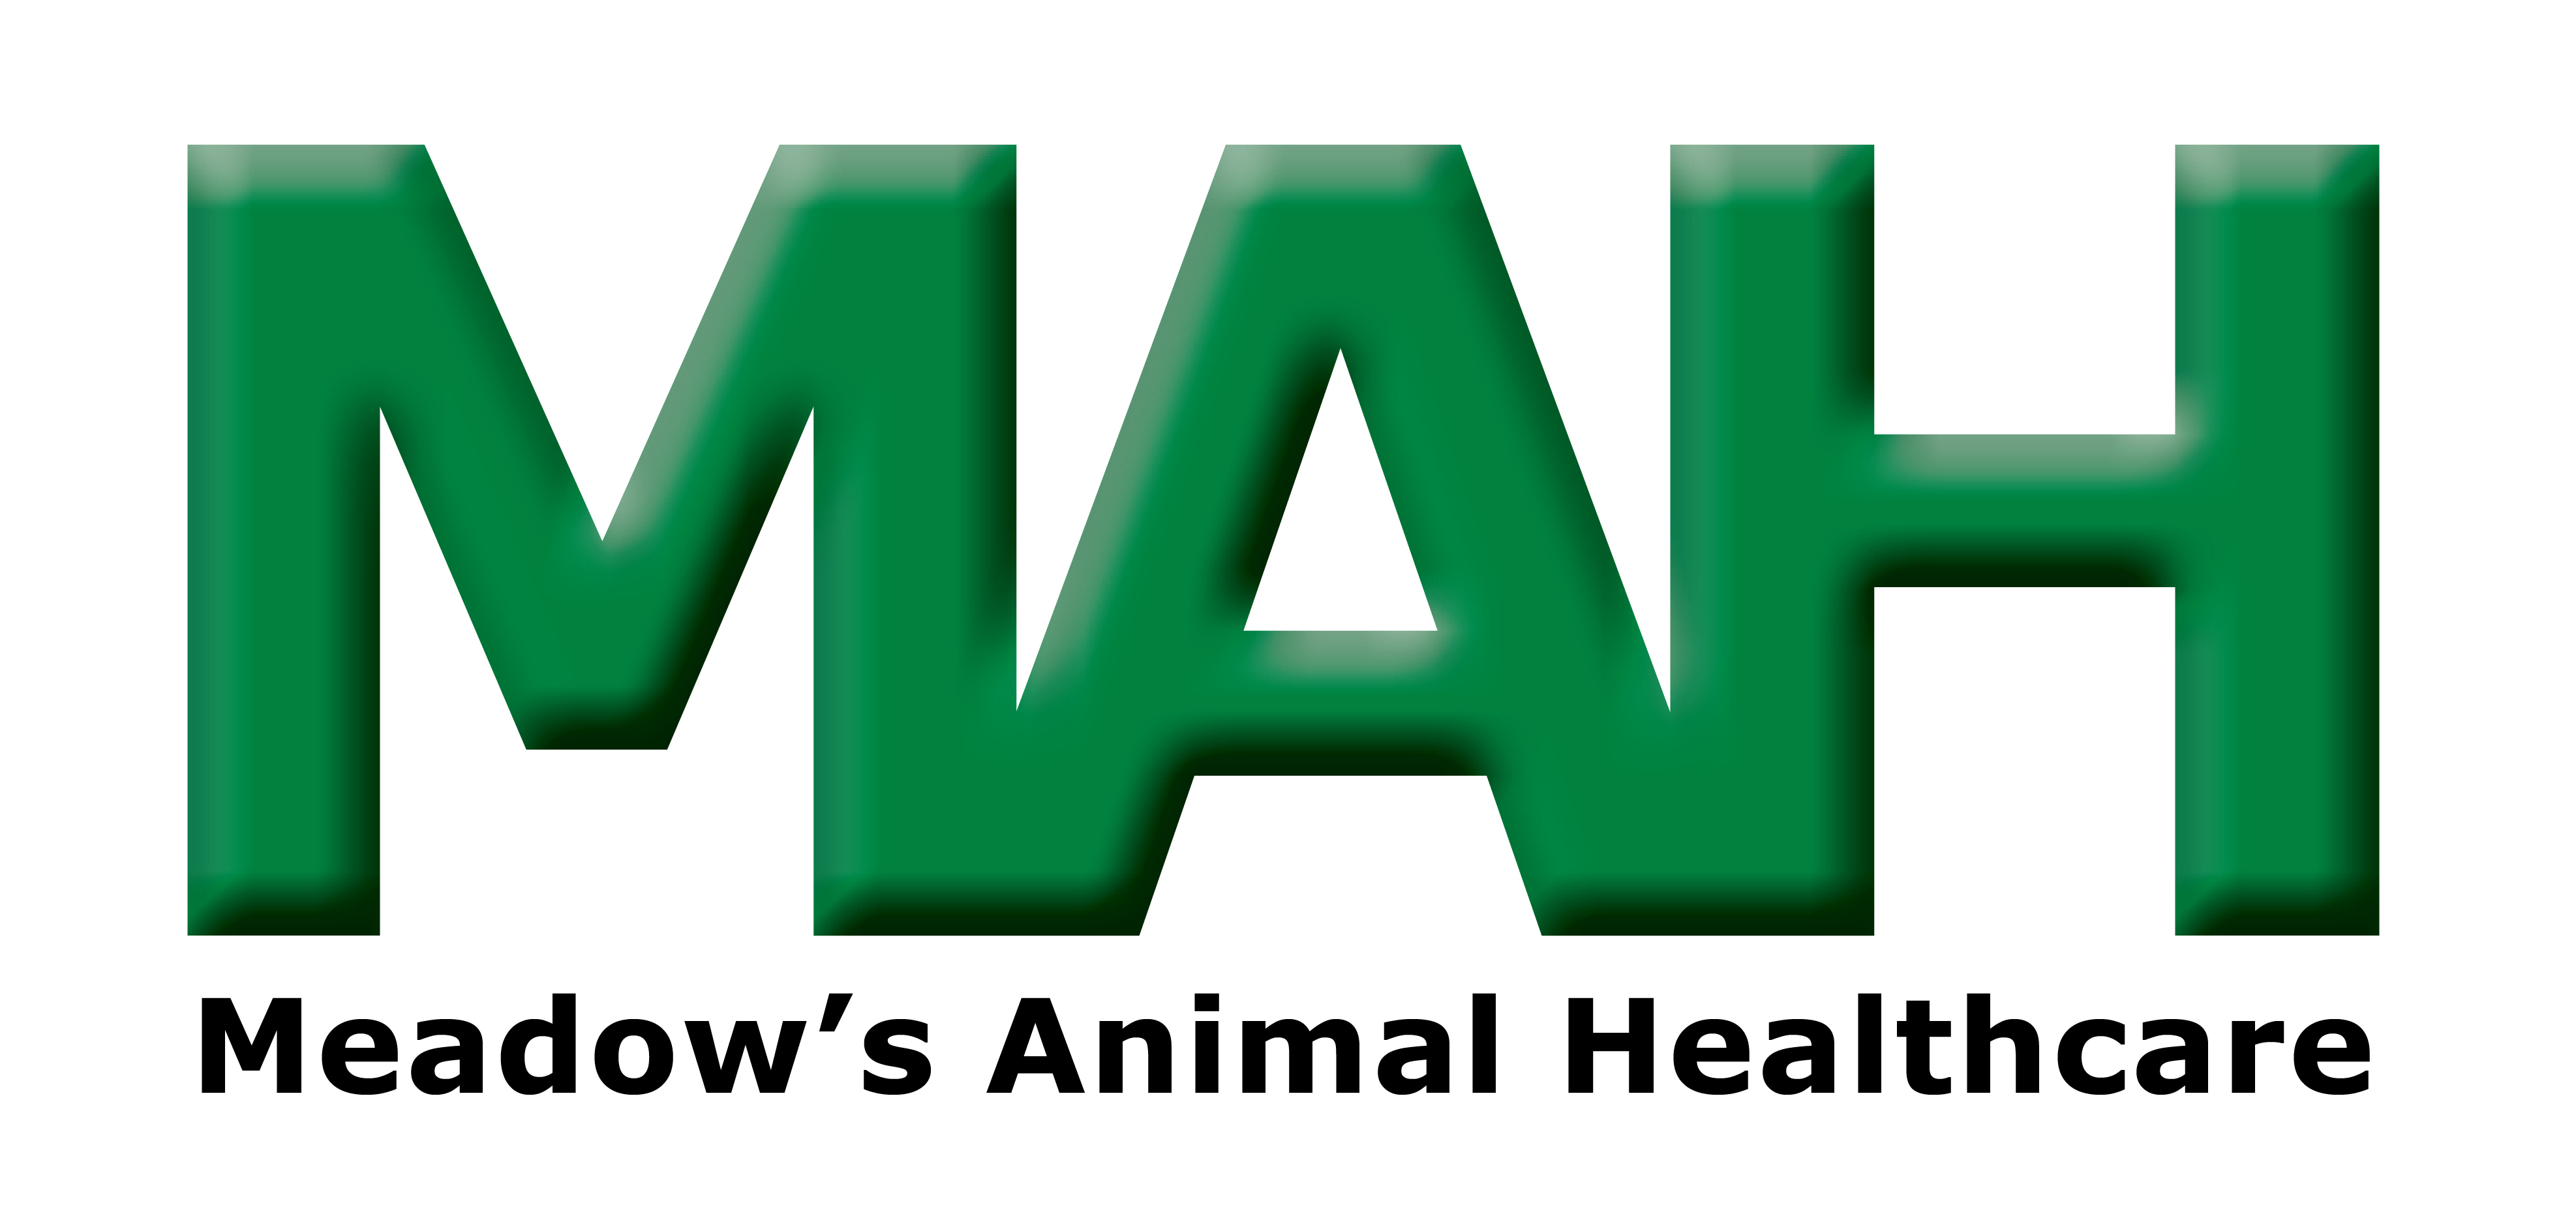 Meadow's Animal Healthcare